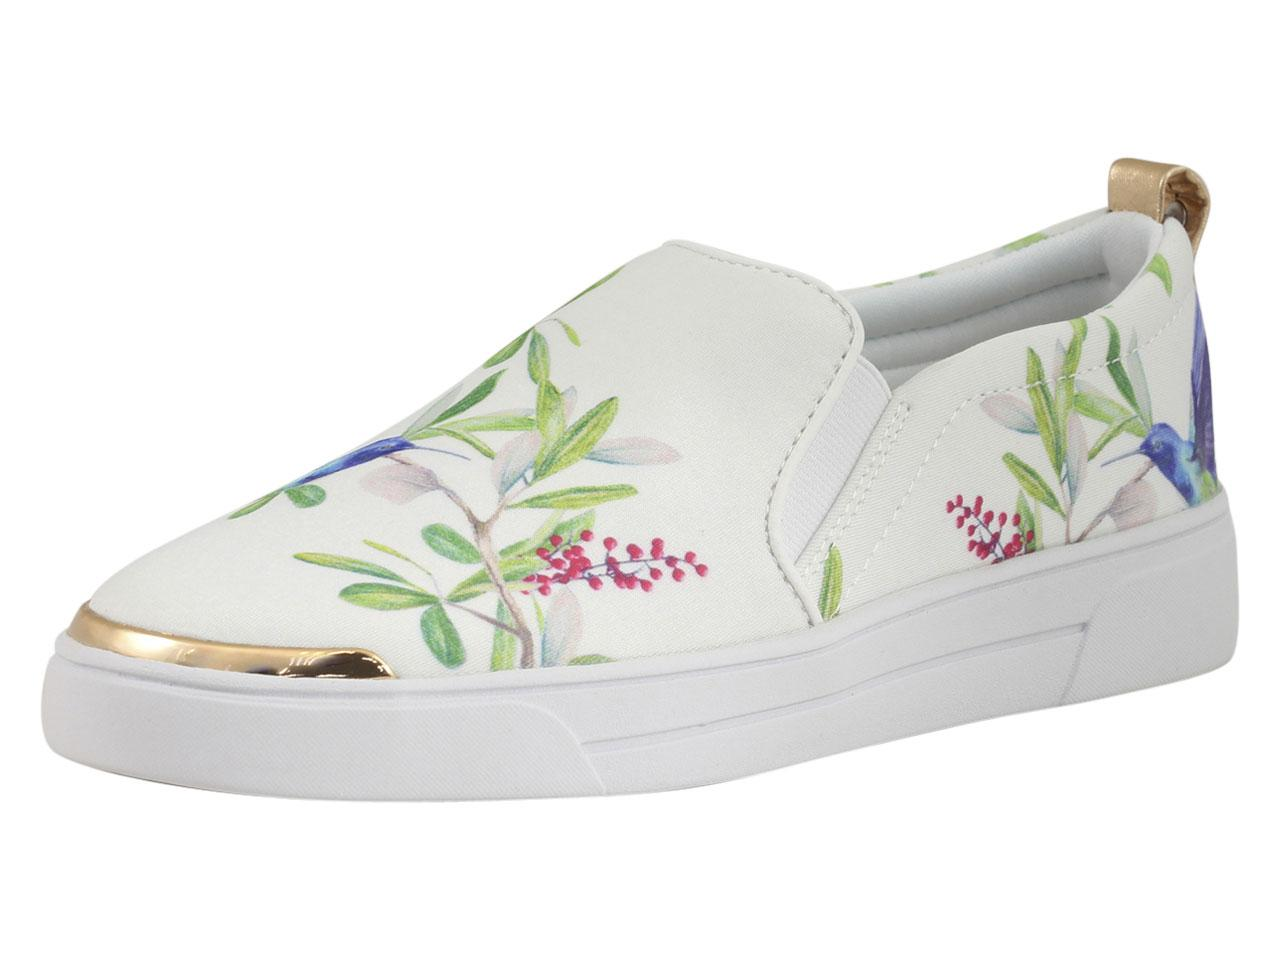 15d4c282fa Ted Baker Women's Tancey Slip-On Sneakers Shoes by Ted Baker. Hover to zoom